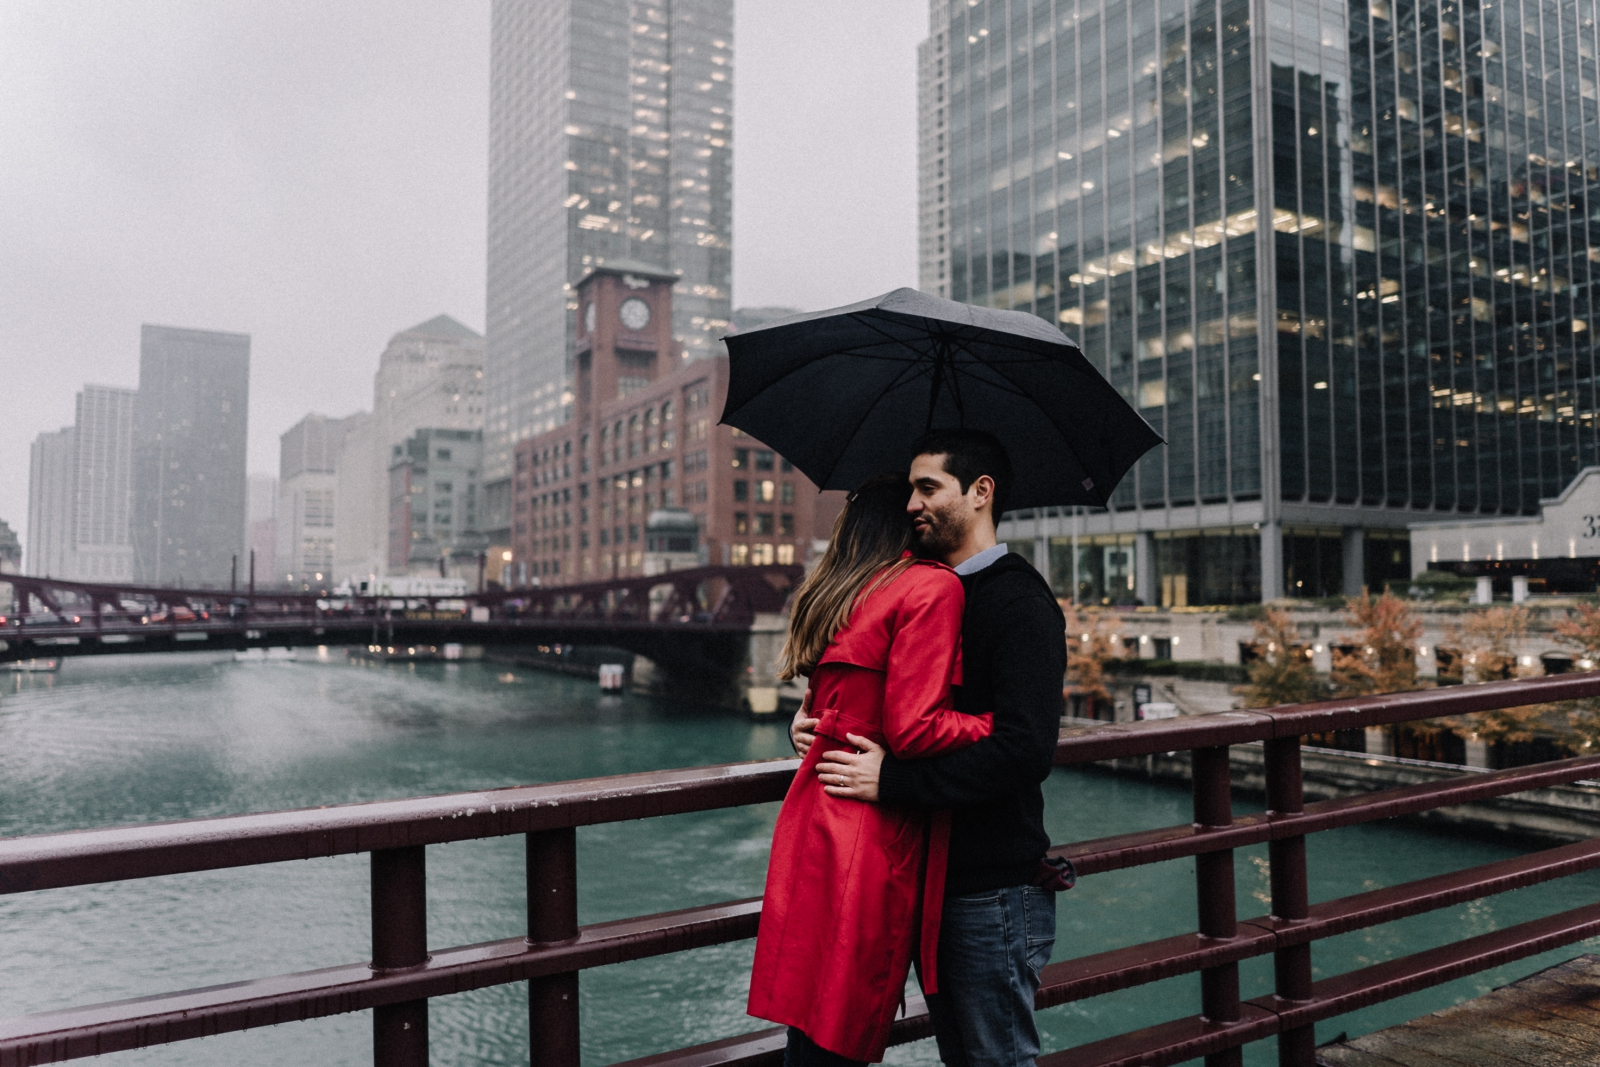 hugging on LaSalle | Chicago vacation photography | lisa kathan photography